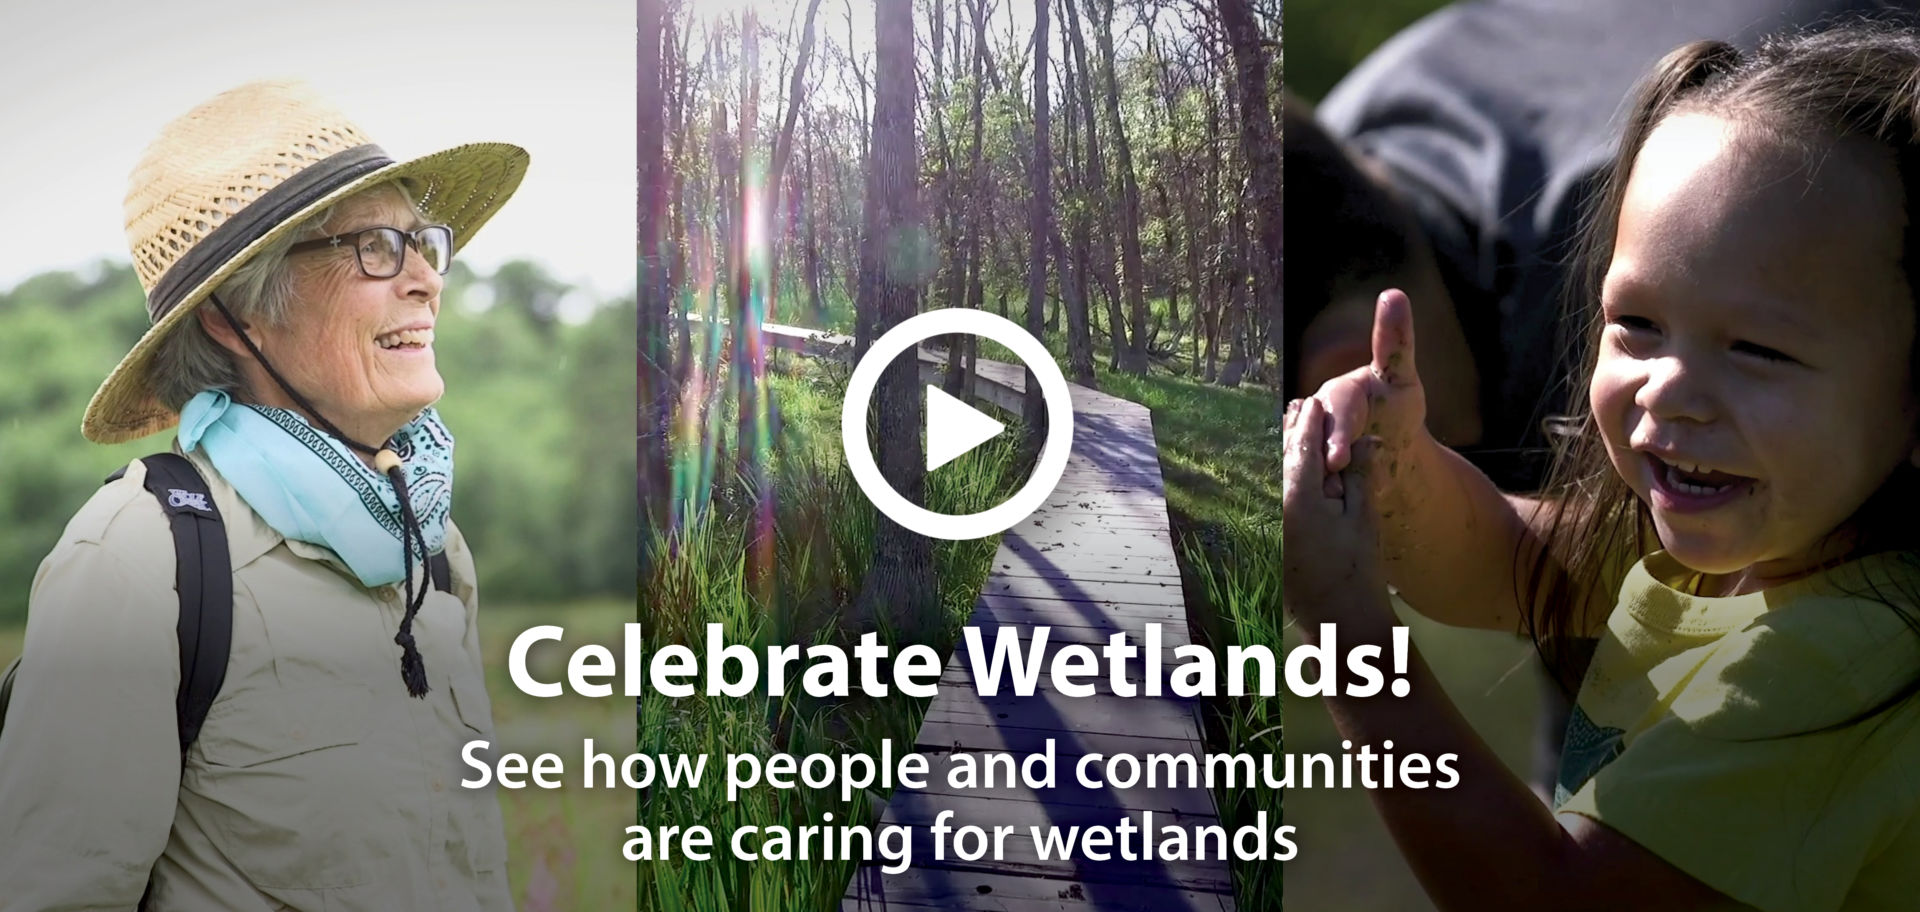 Wisconsin's waters, wildlife, and people need healthy wetlands